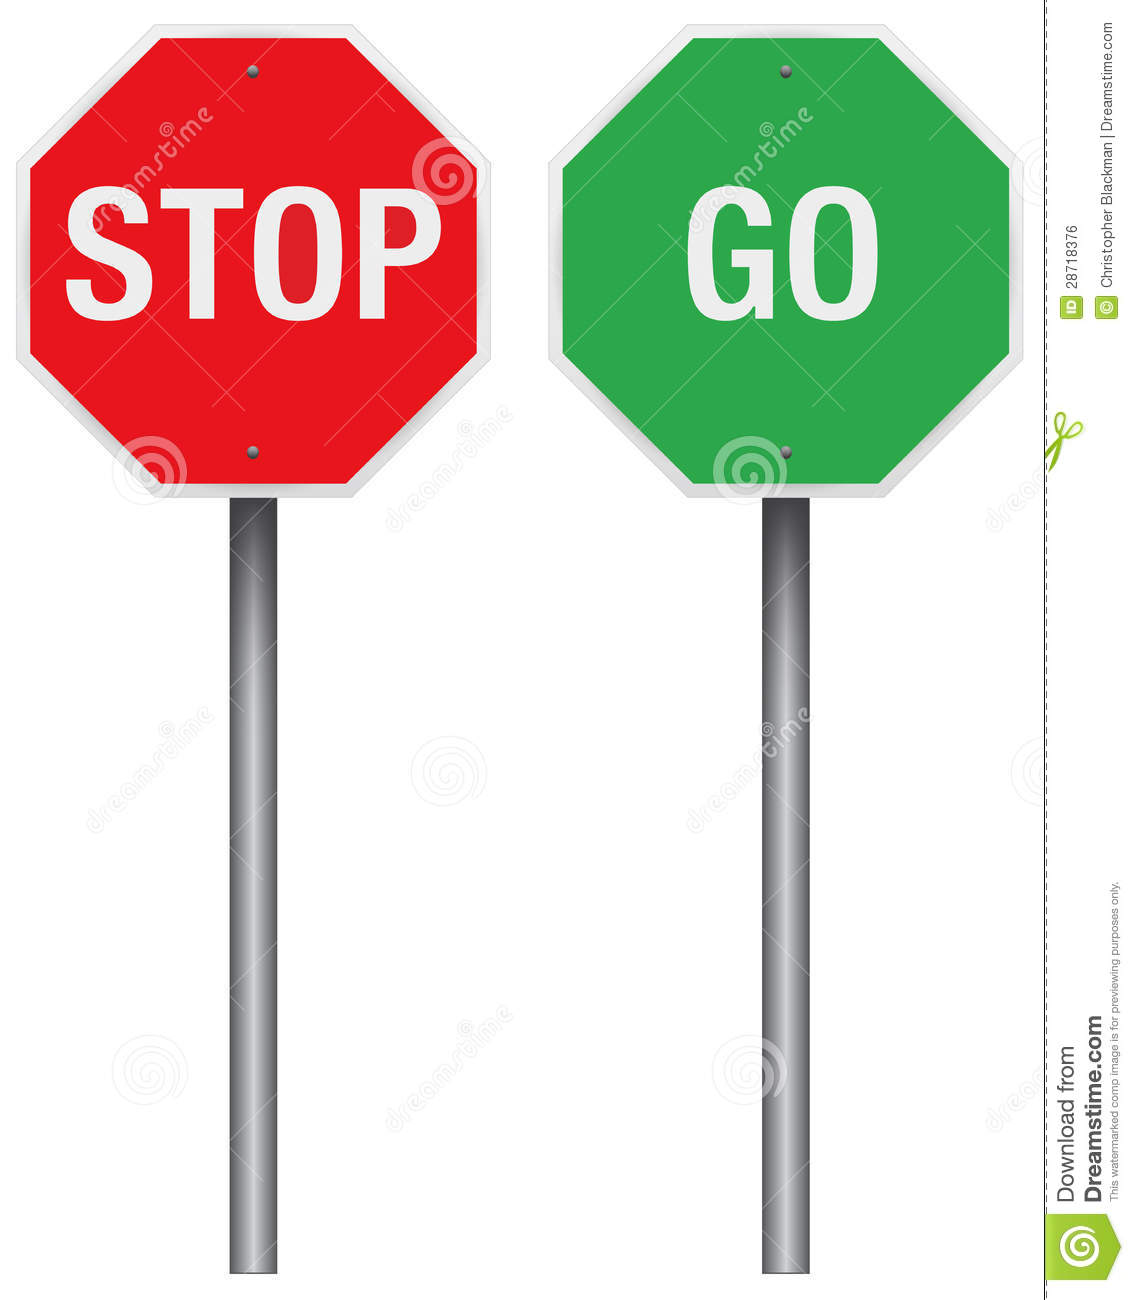 Arrow road stop sign clipart clipart library stock Images Stop Signs | Free download best Images Stop Signs on ... clipart library stock